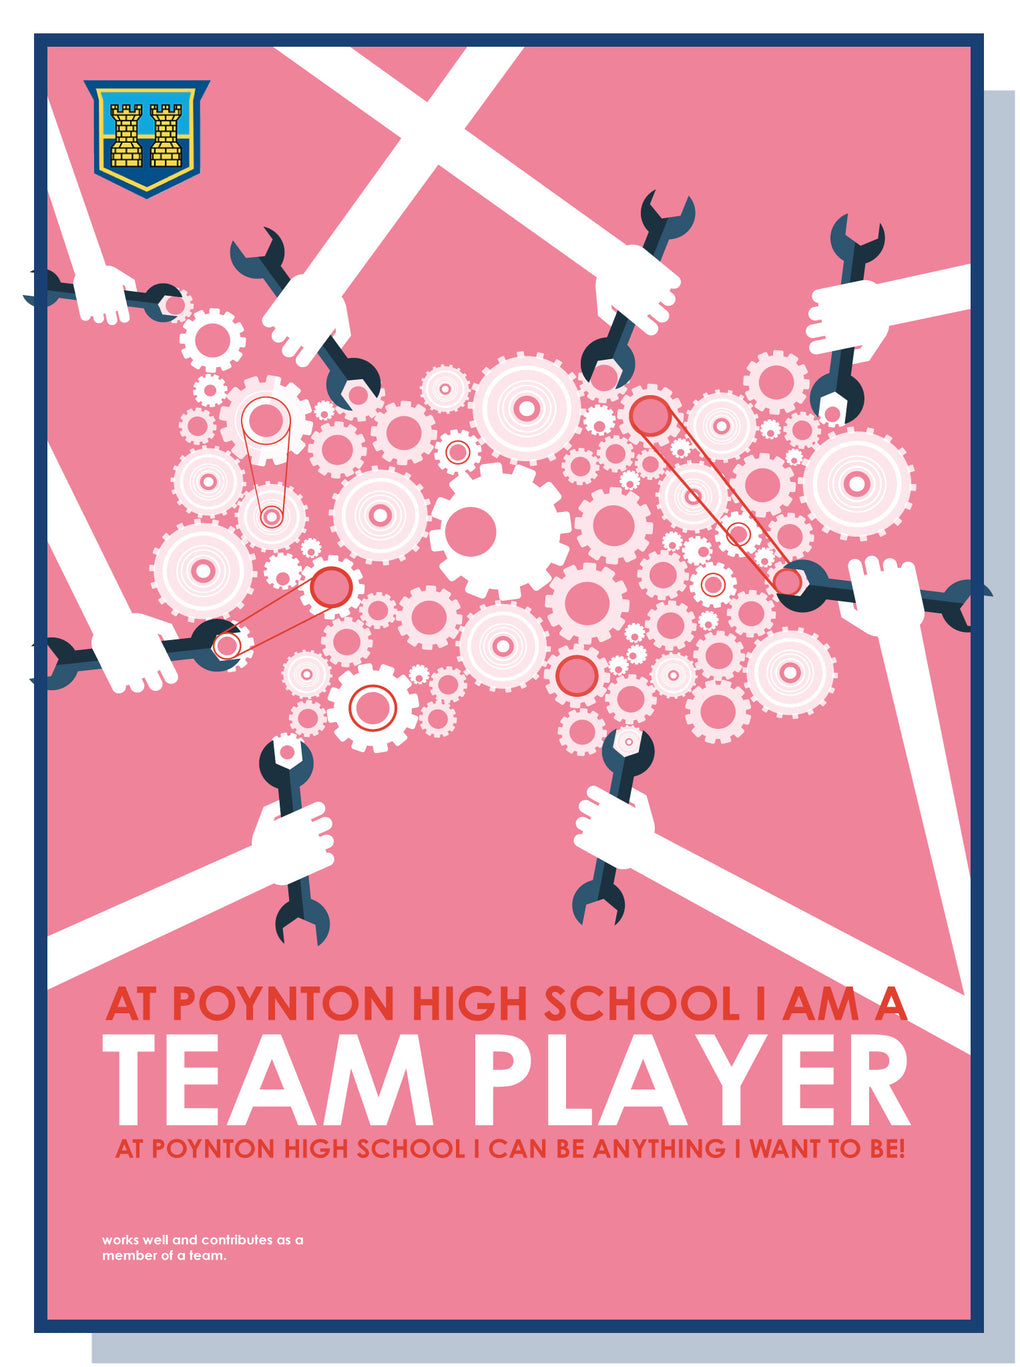 We are team players